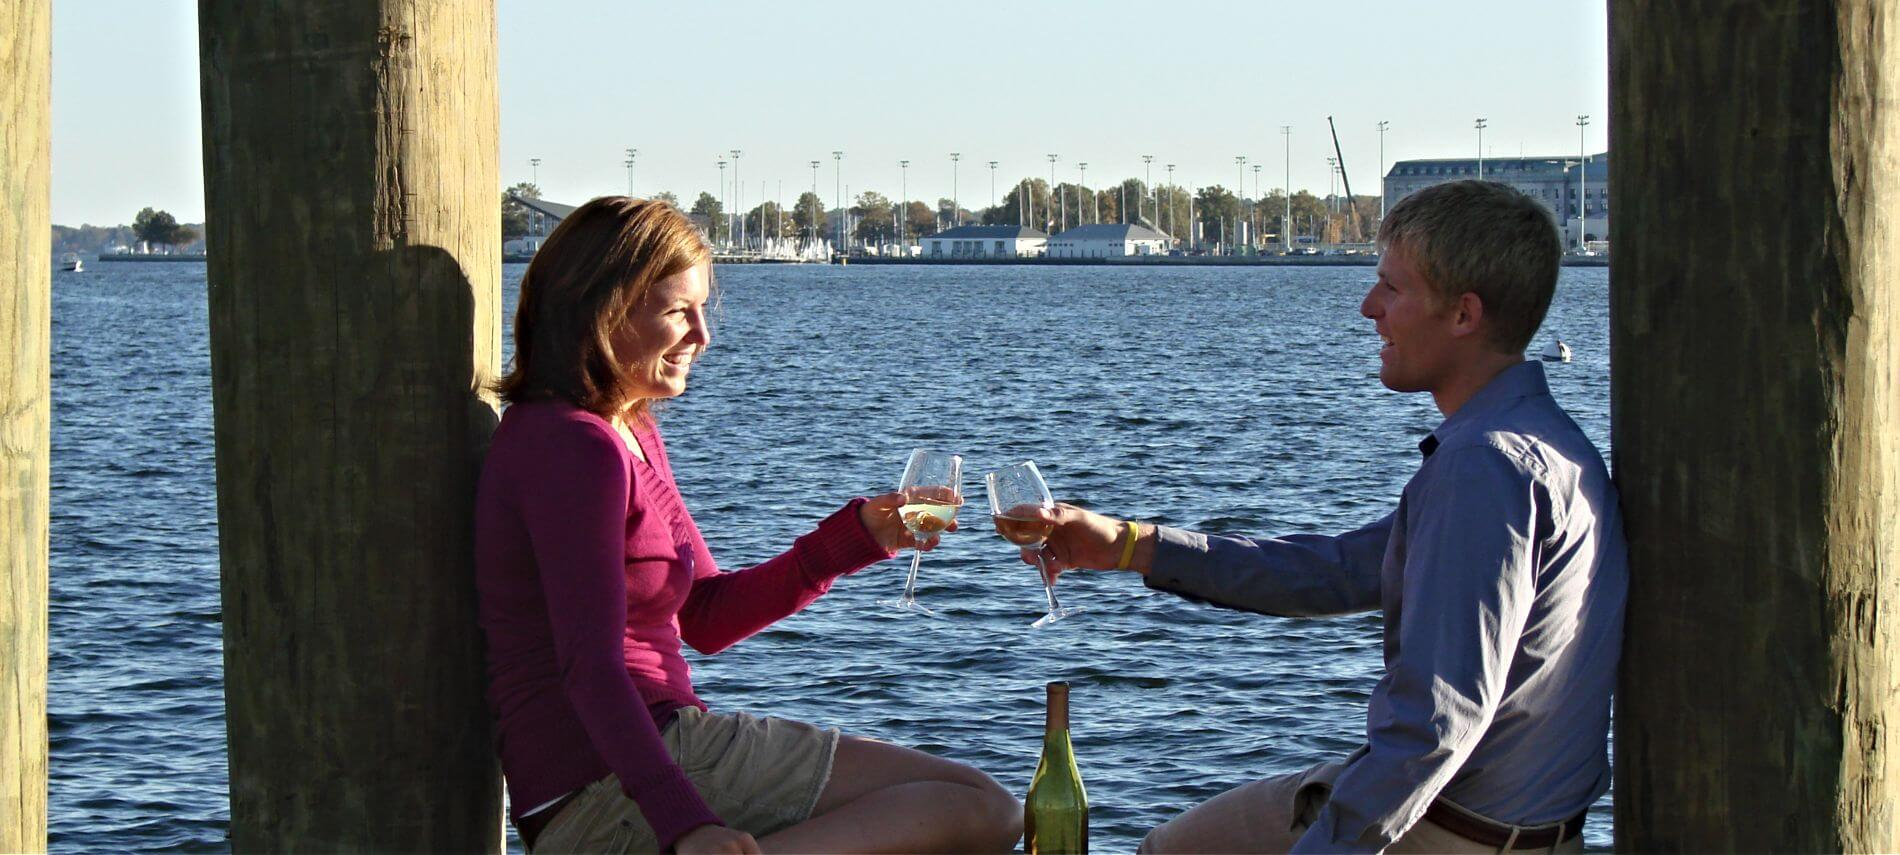 Man and woman toasting with wine glasses on wooden dock